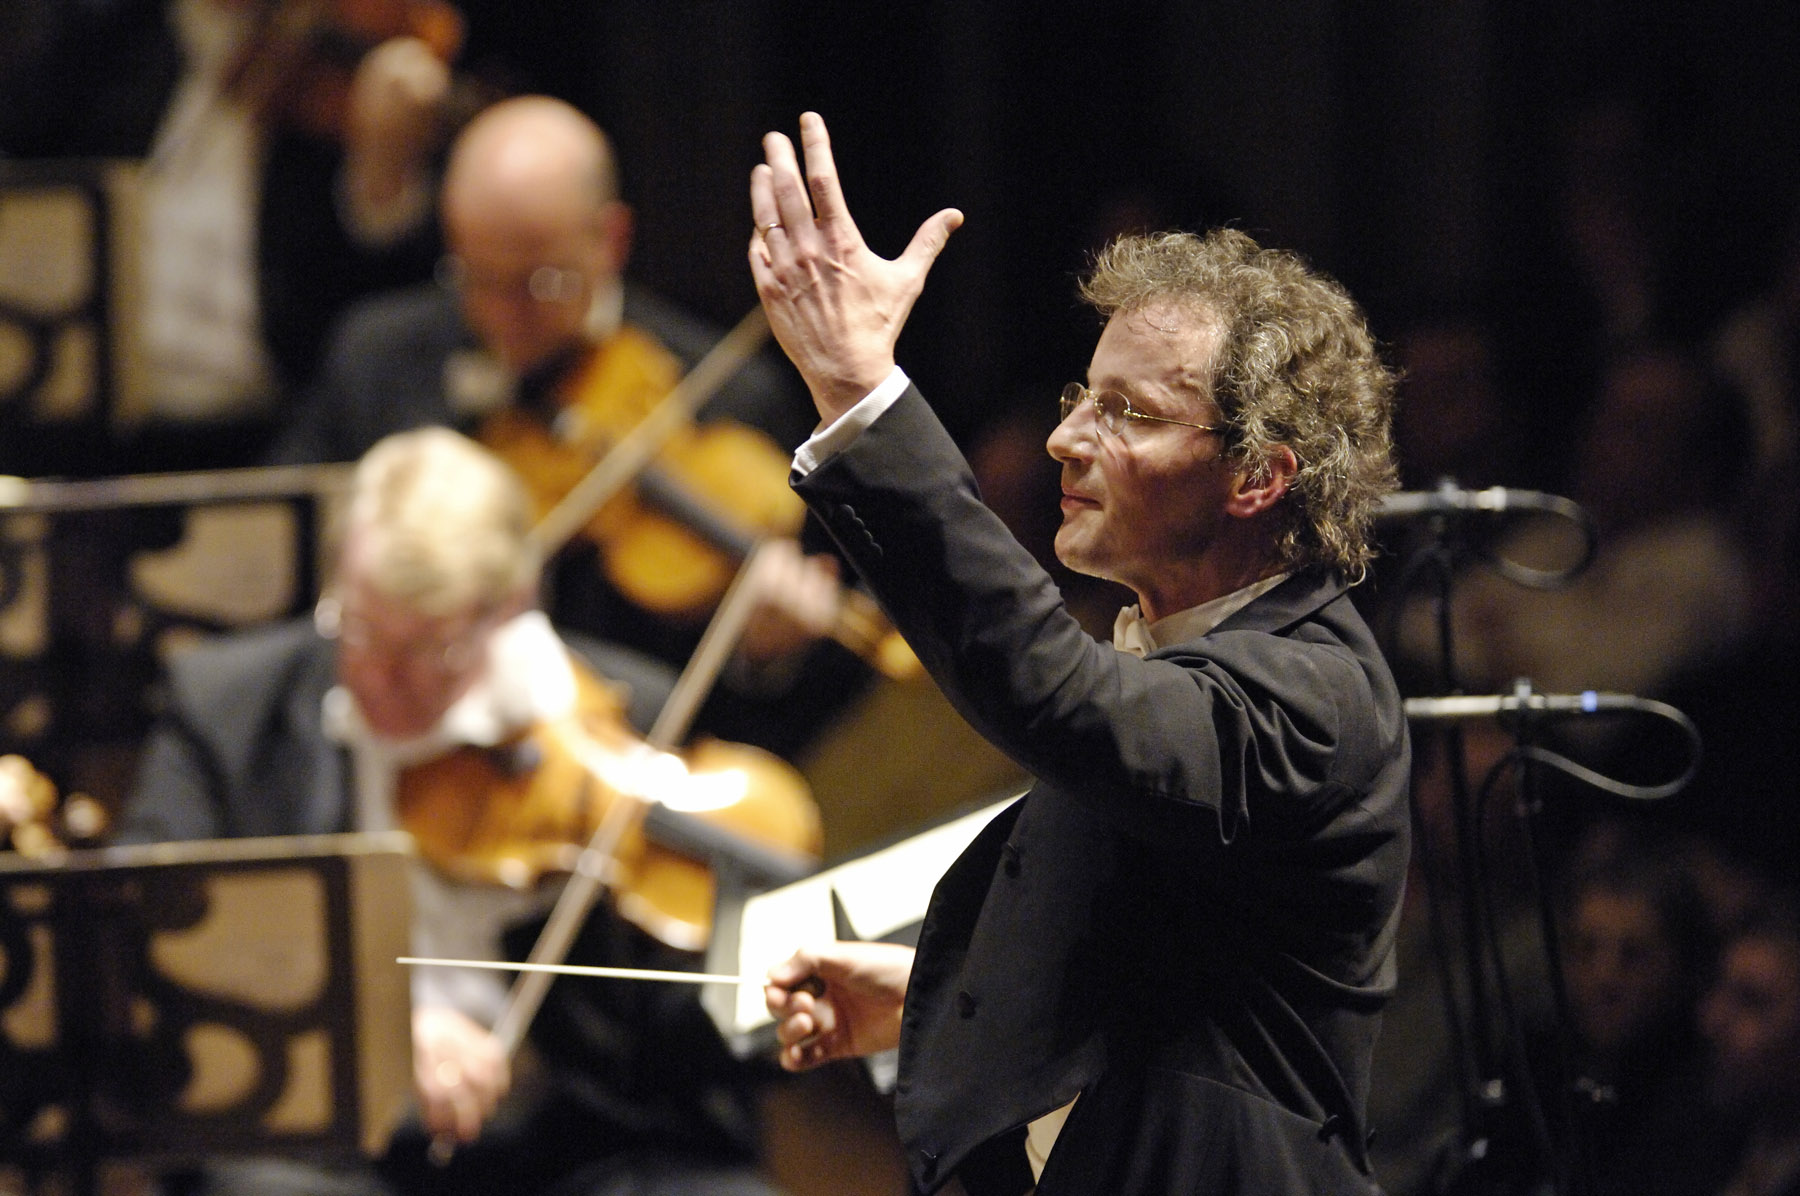 Music Director Franz Welser-Möst directs The Cleveland Orchestra, consistently ranked within the top 10 orchestras in the world. 